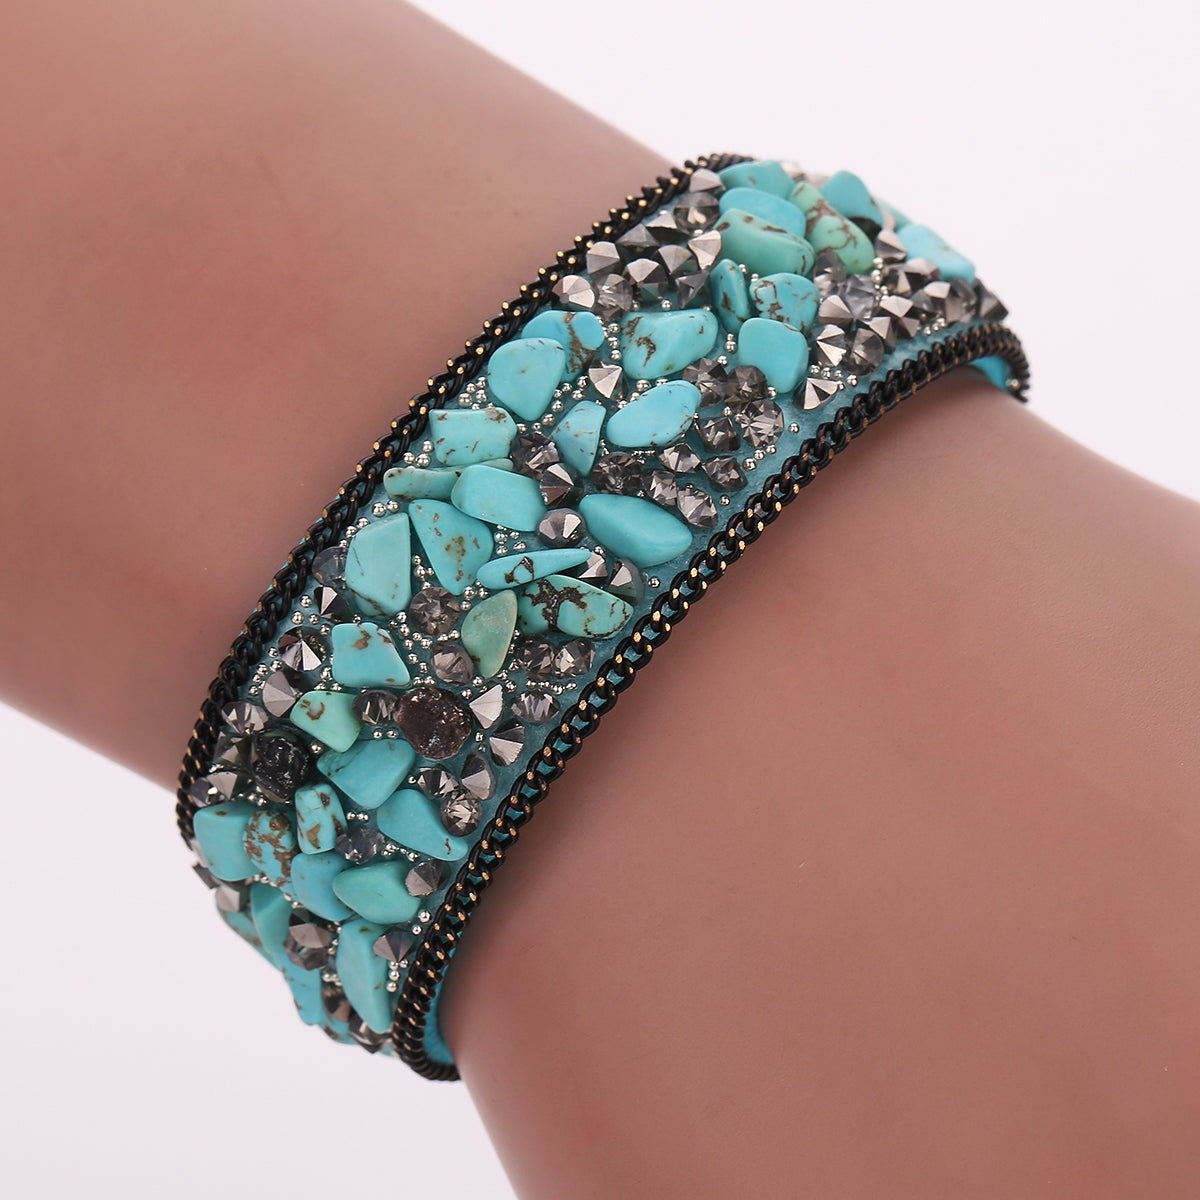 Women Leather Bracelet Bangle with Stones